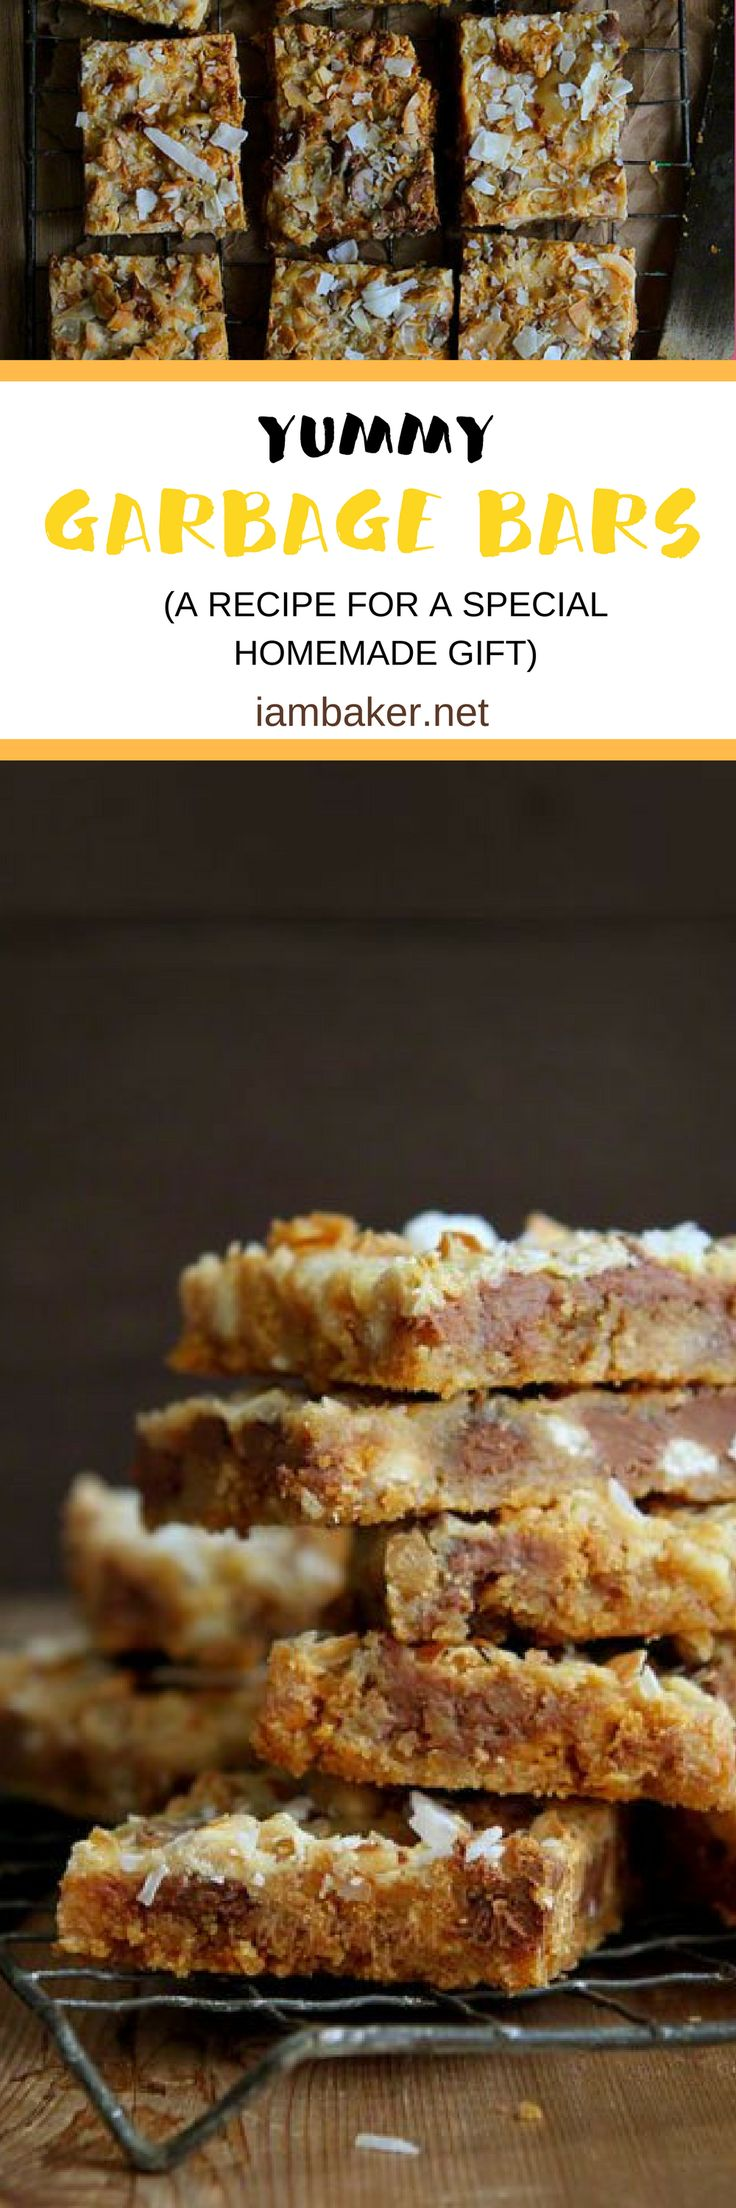 Garbage Bars | Learn to make a special homemade gift out of any of your favorite ingredients in your pantry! | iambaker.net